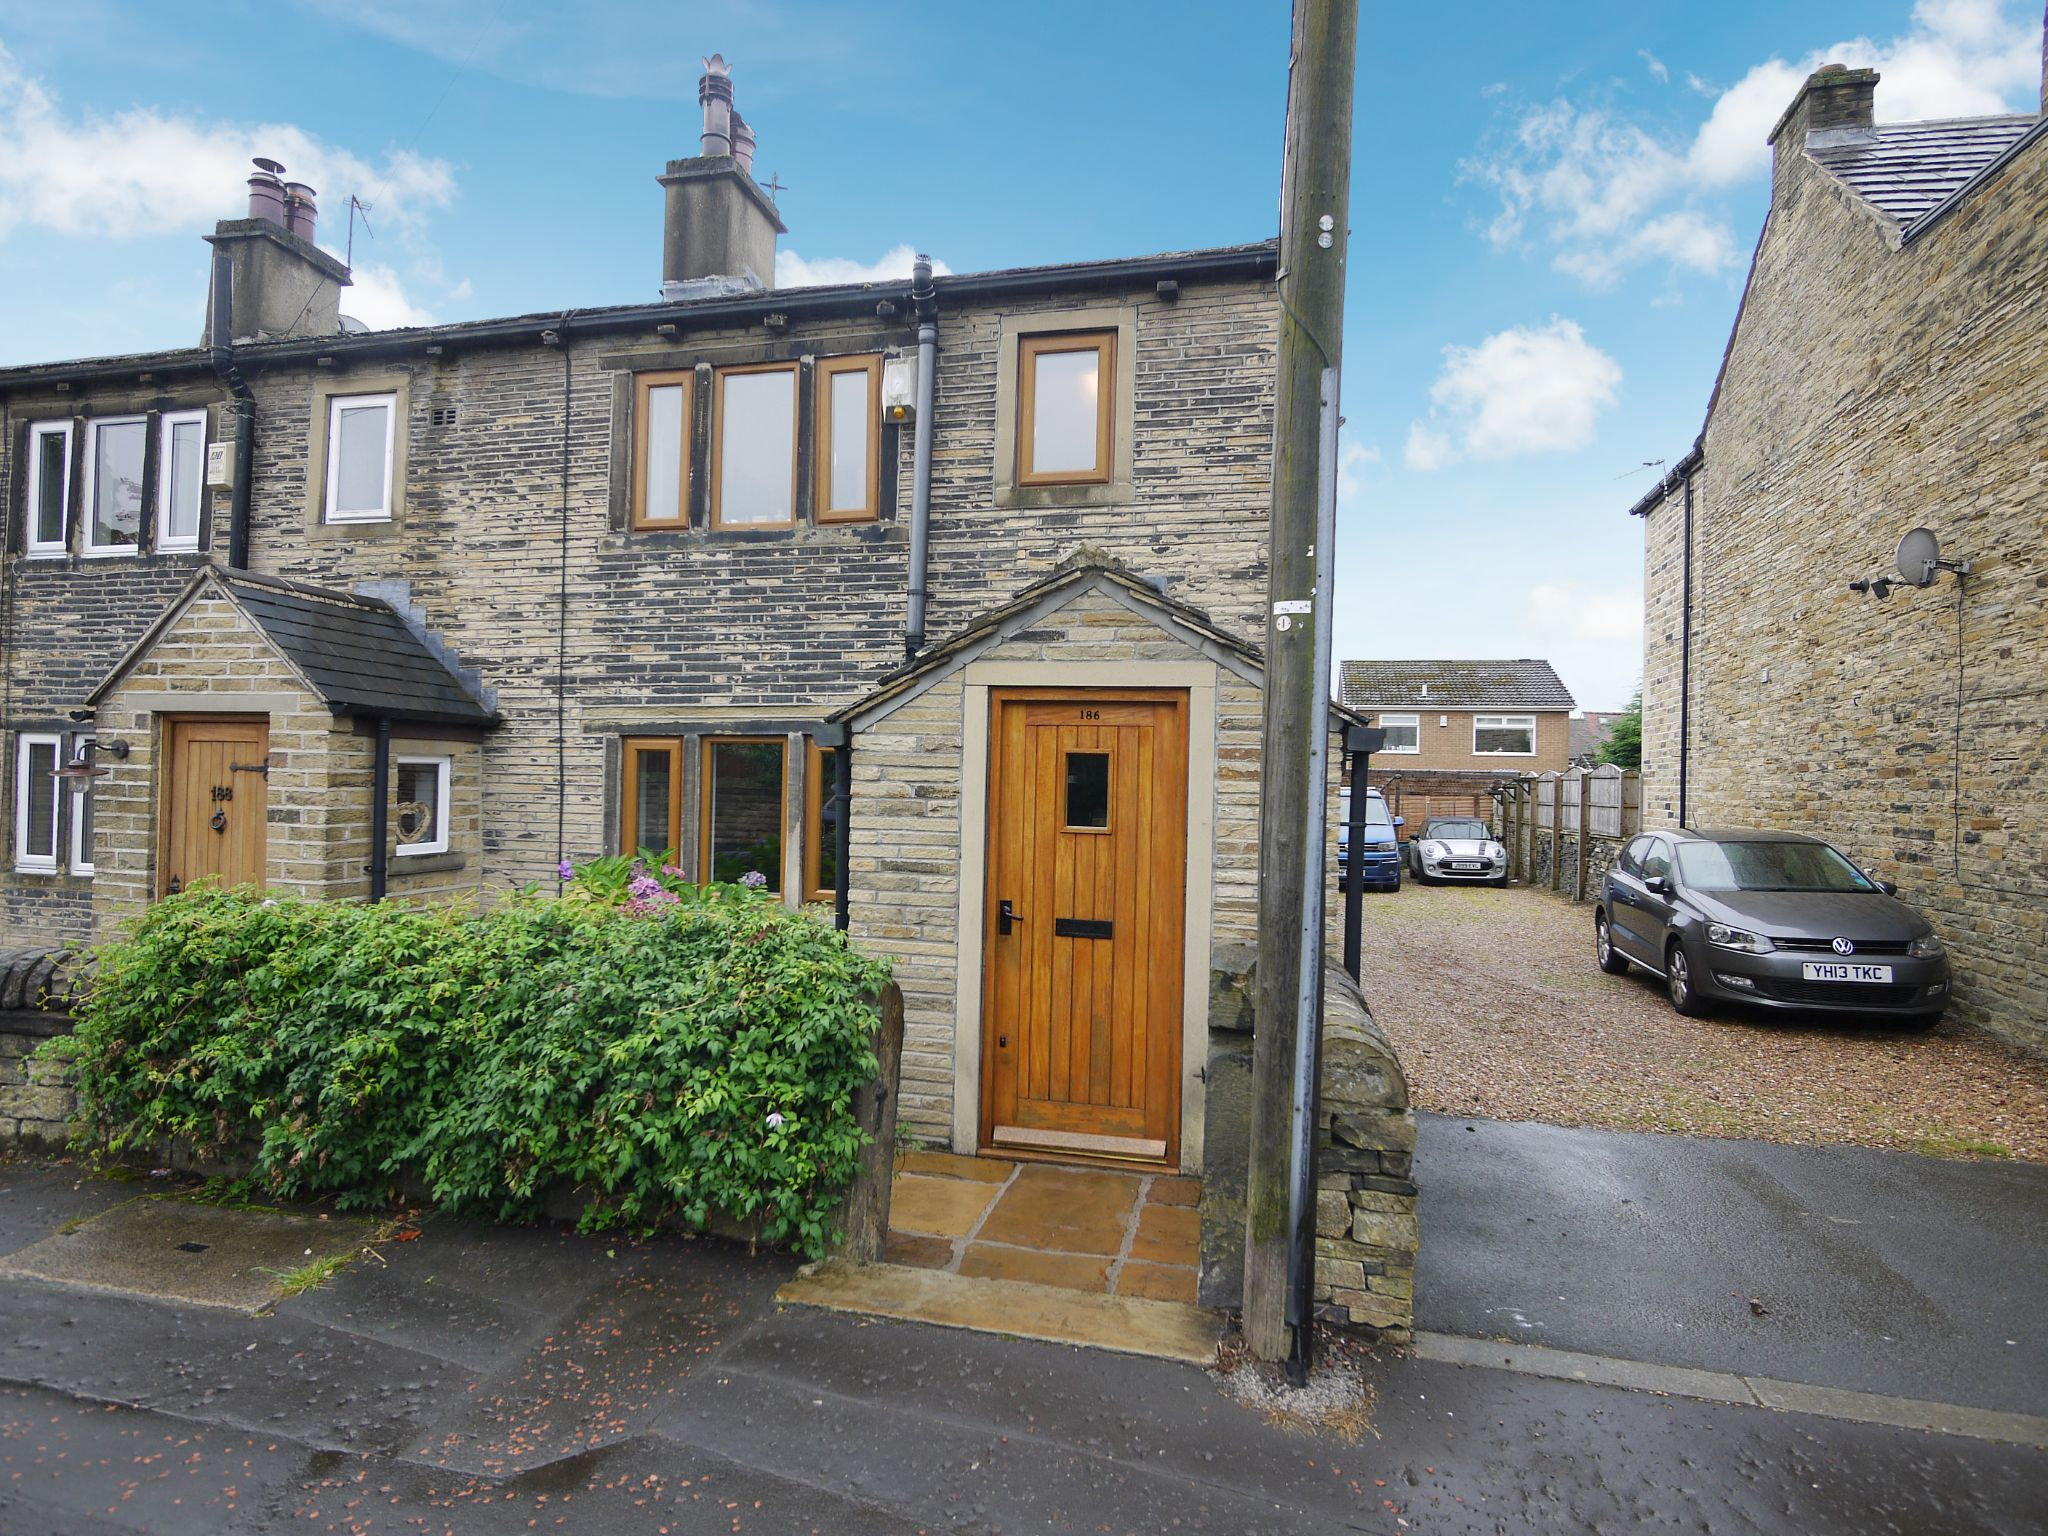 3 bedroom cottage house SSTC in Calderdale - Photograph 3.